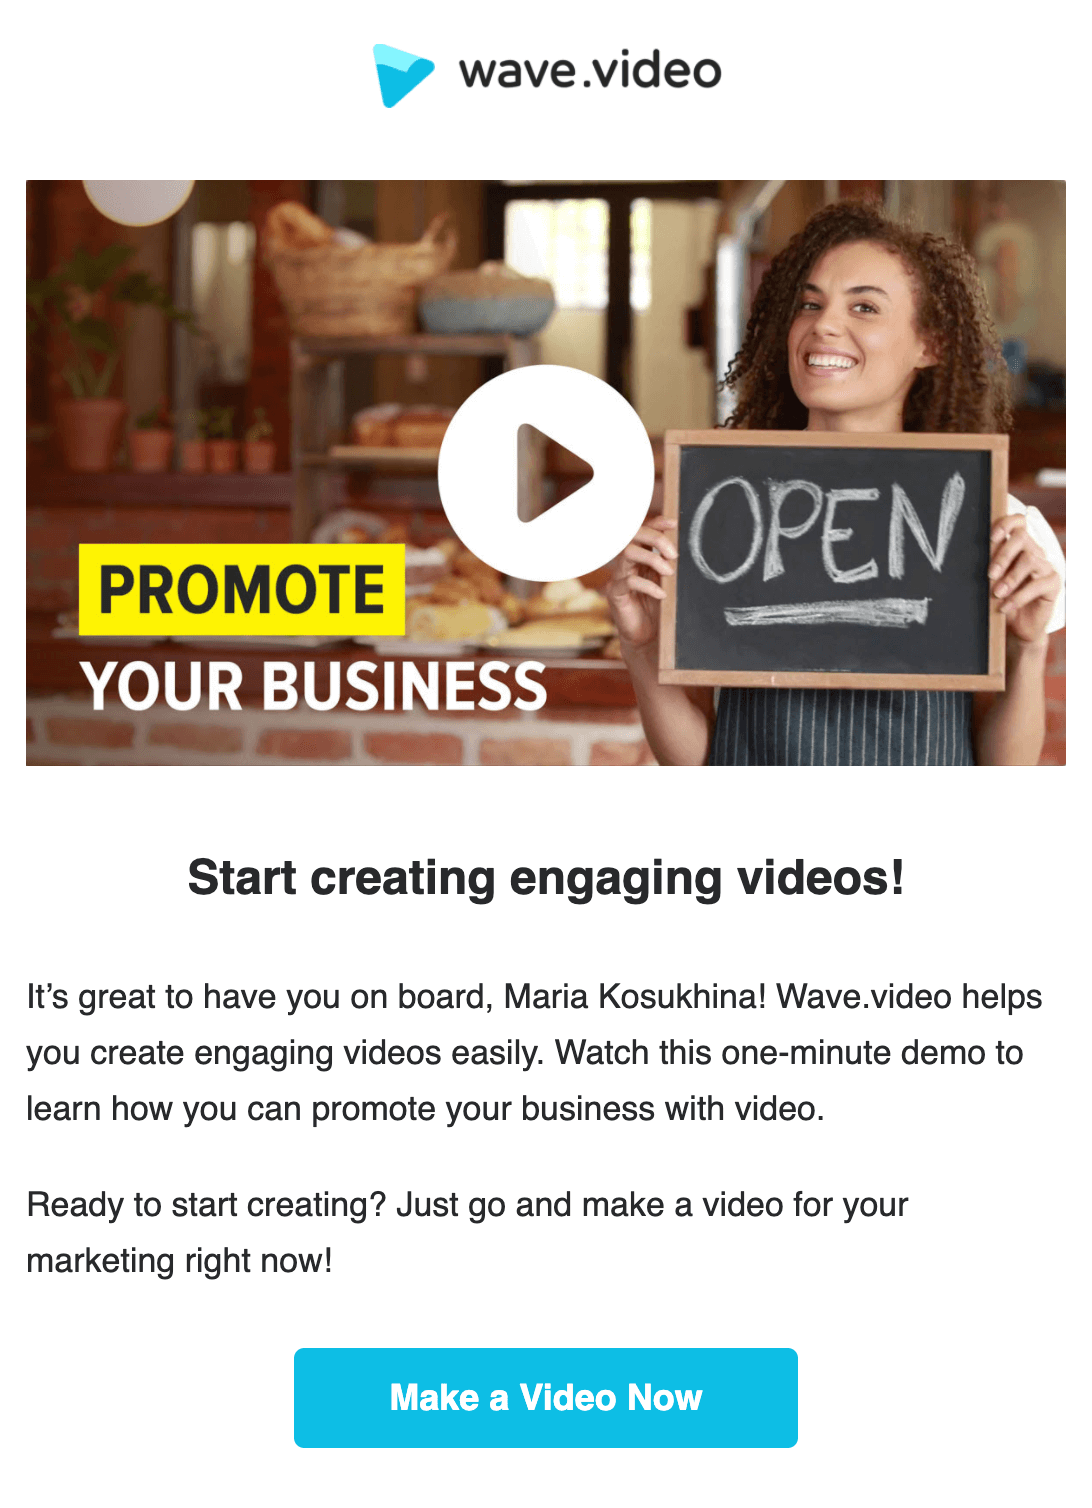 Static image with play button in email